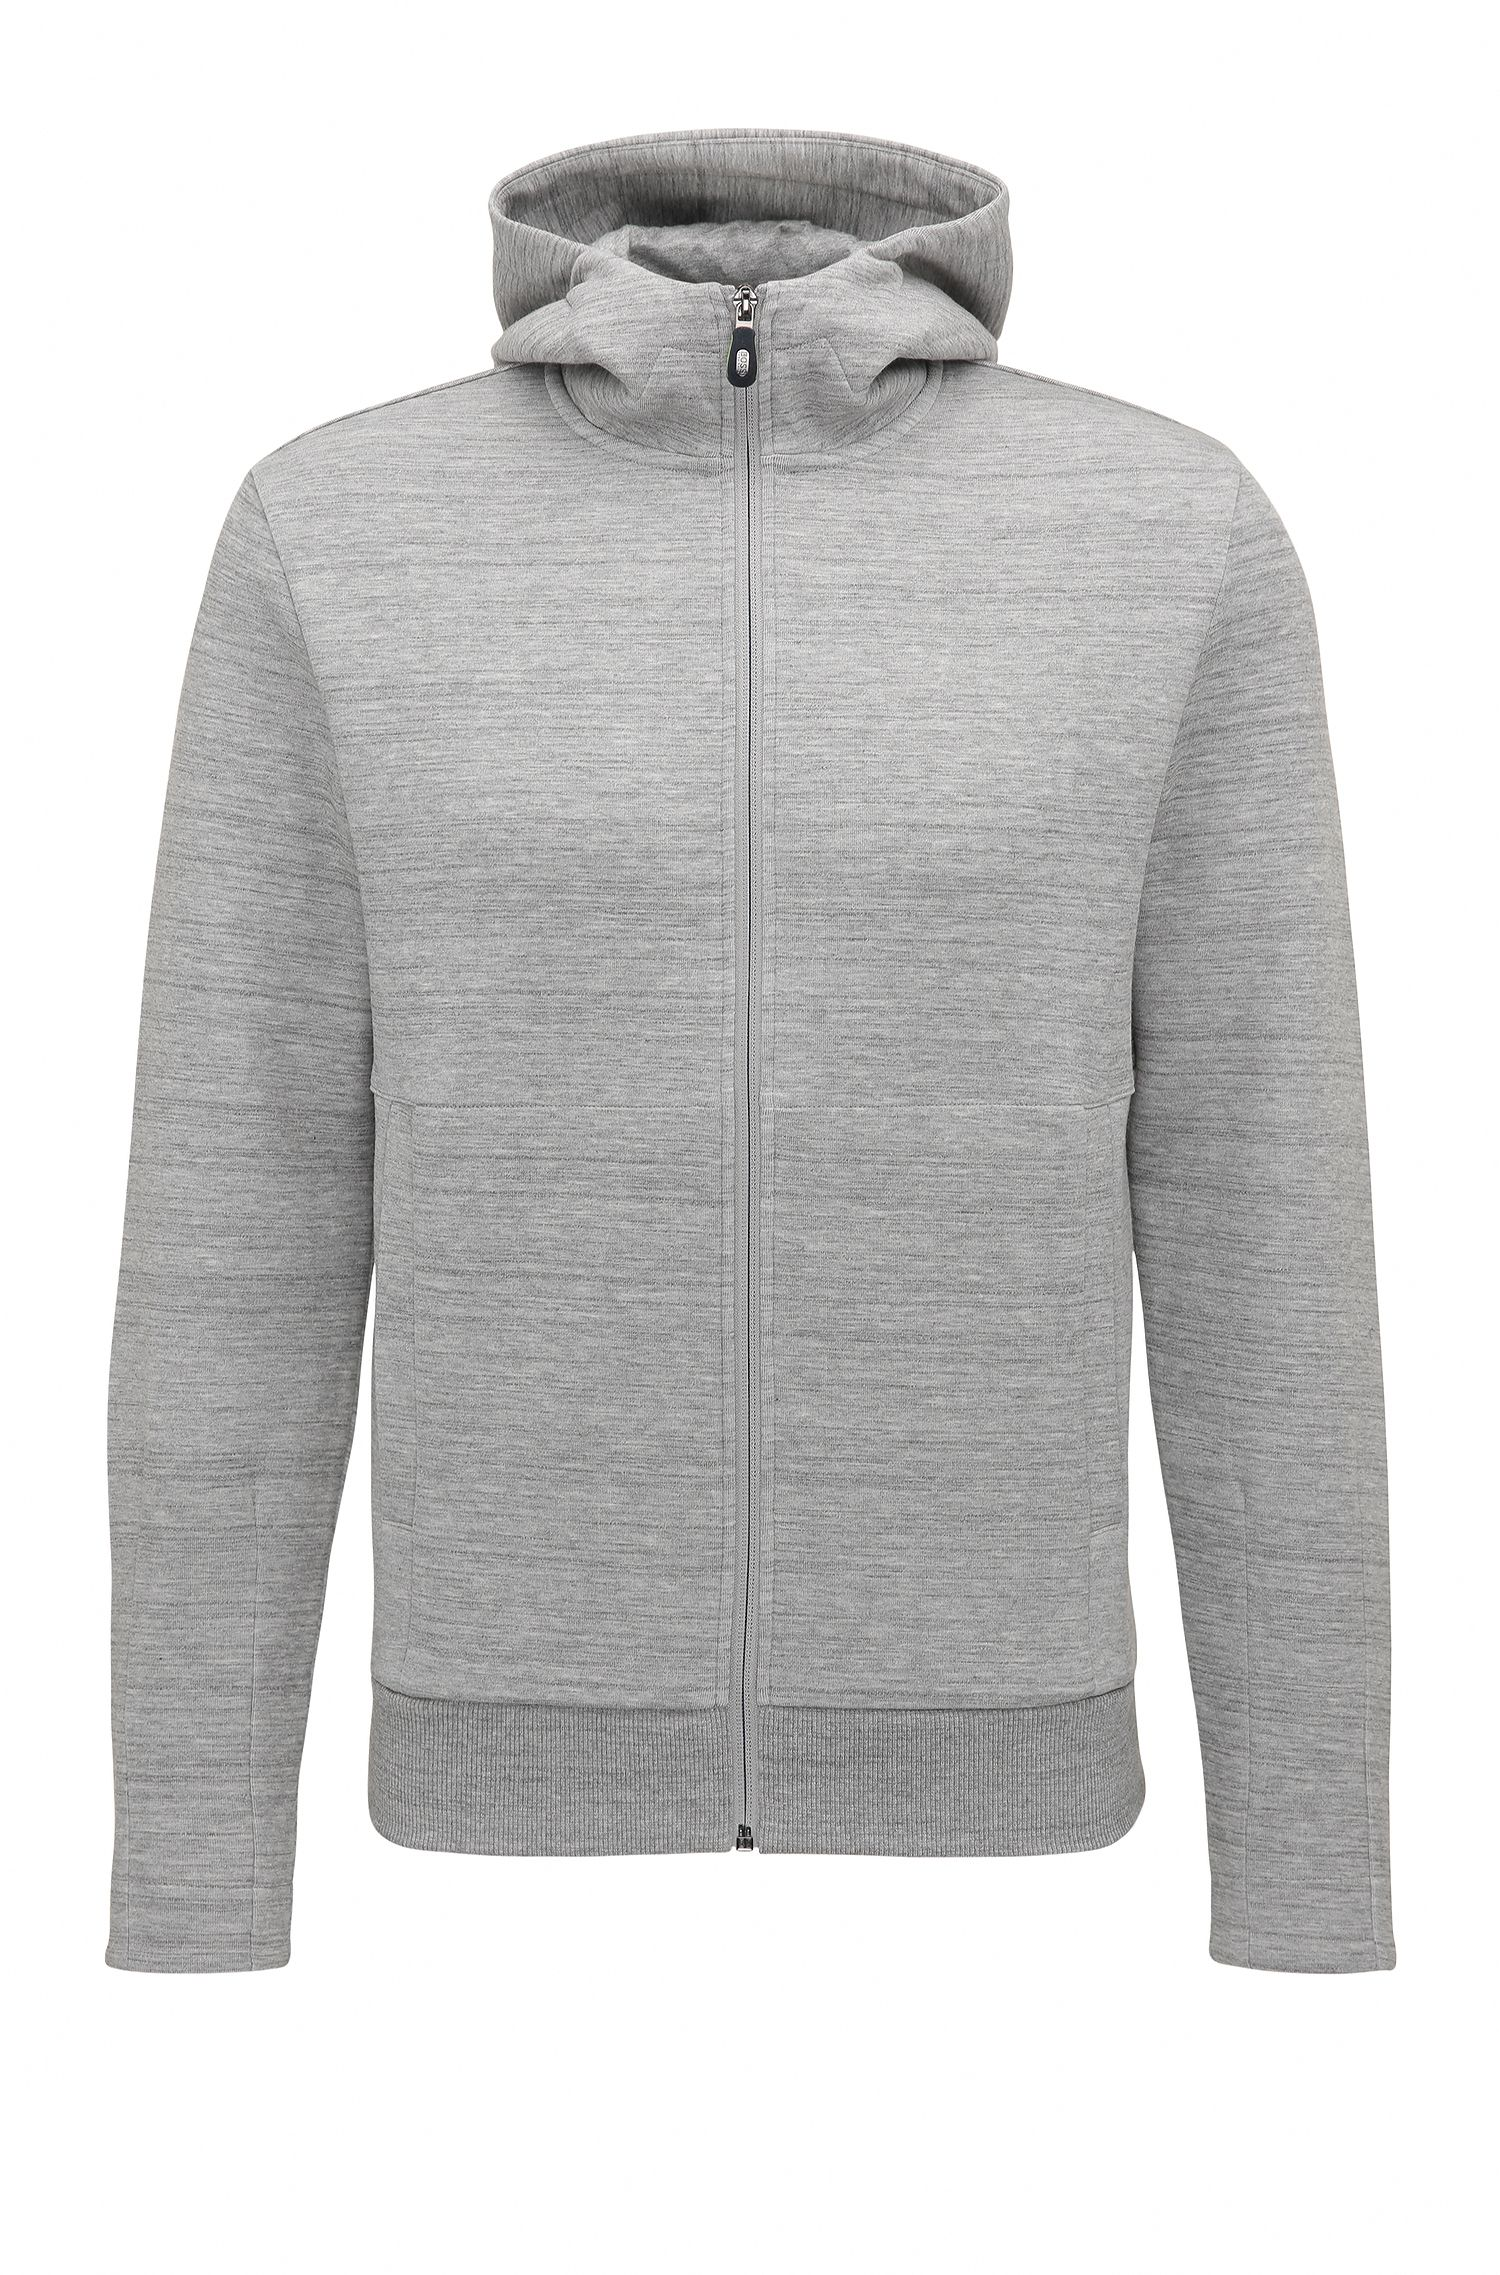 Sweat Slim Fit à capuche en coton mélangé